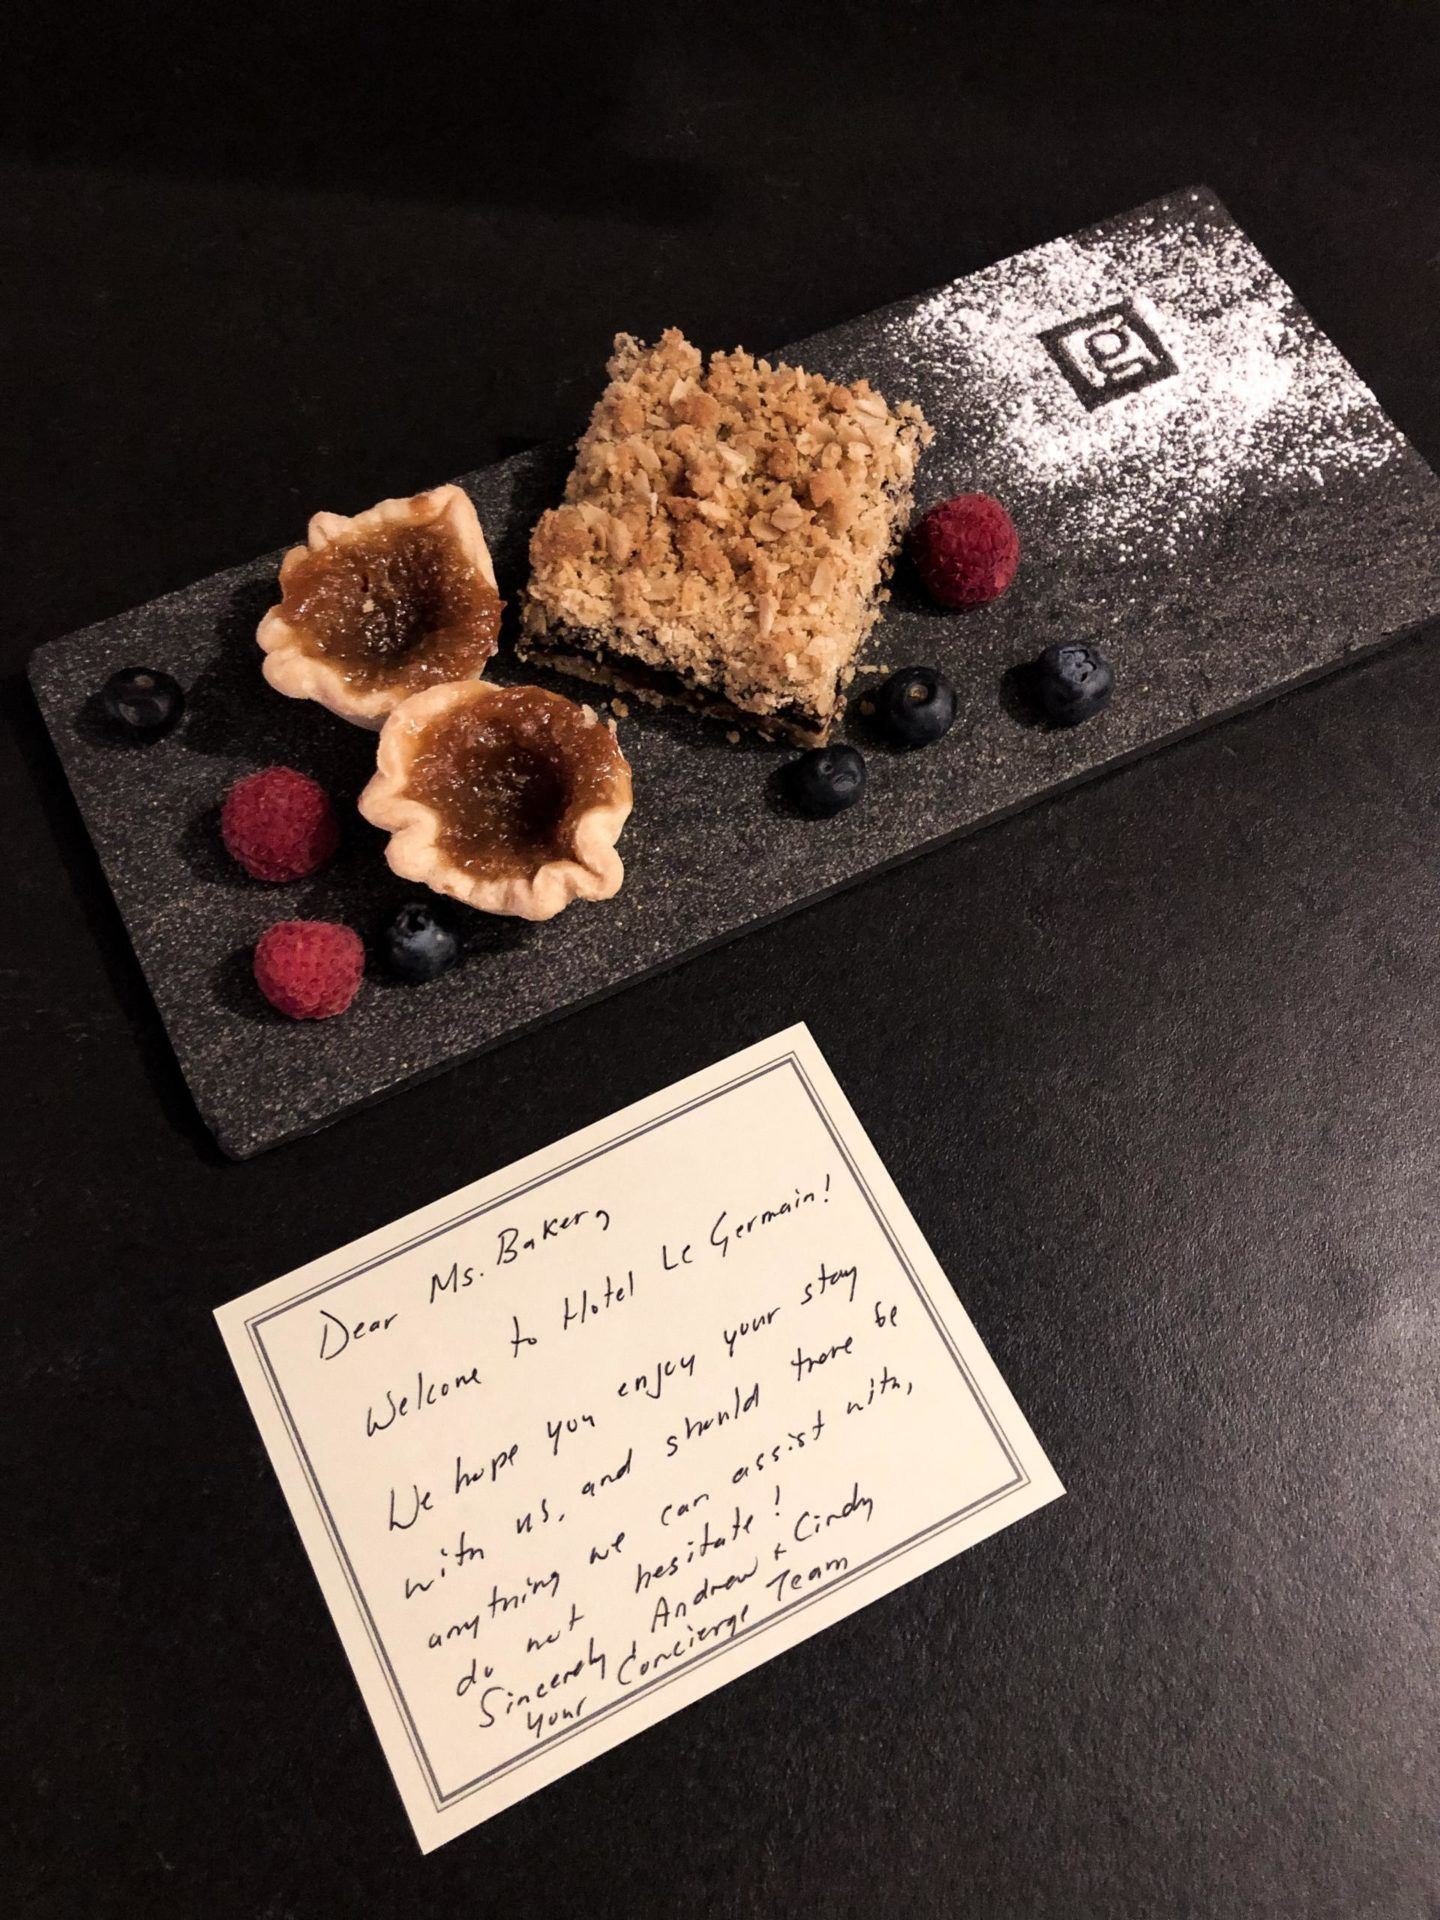 Desserts waiting for me in my room at the Hotel Le Germain Toronto Mercer